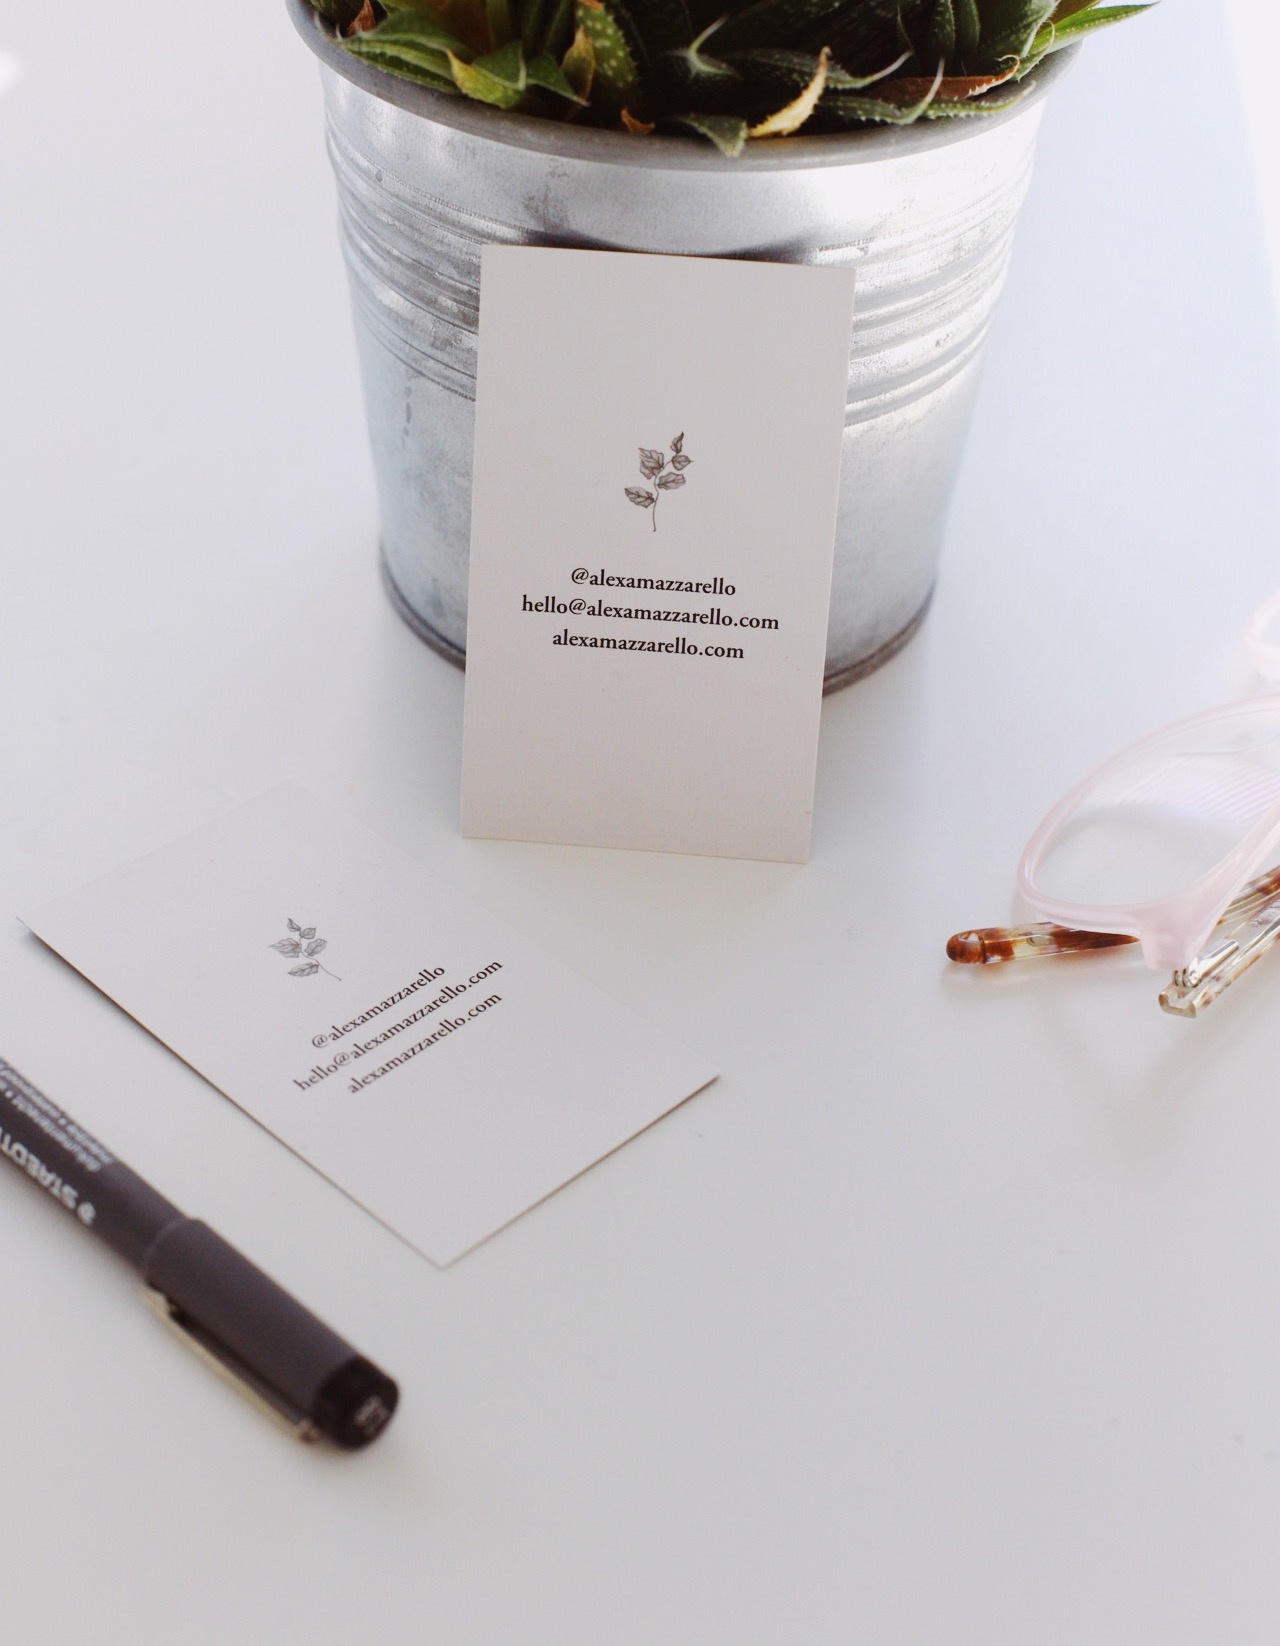 Photo of Alexa Mazzarello's business cards featuring her leaf illustration. Business cards are sat next to pink glasses, a black pen, and a plant in a metal container.